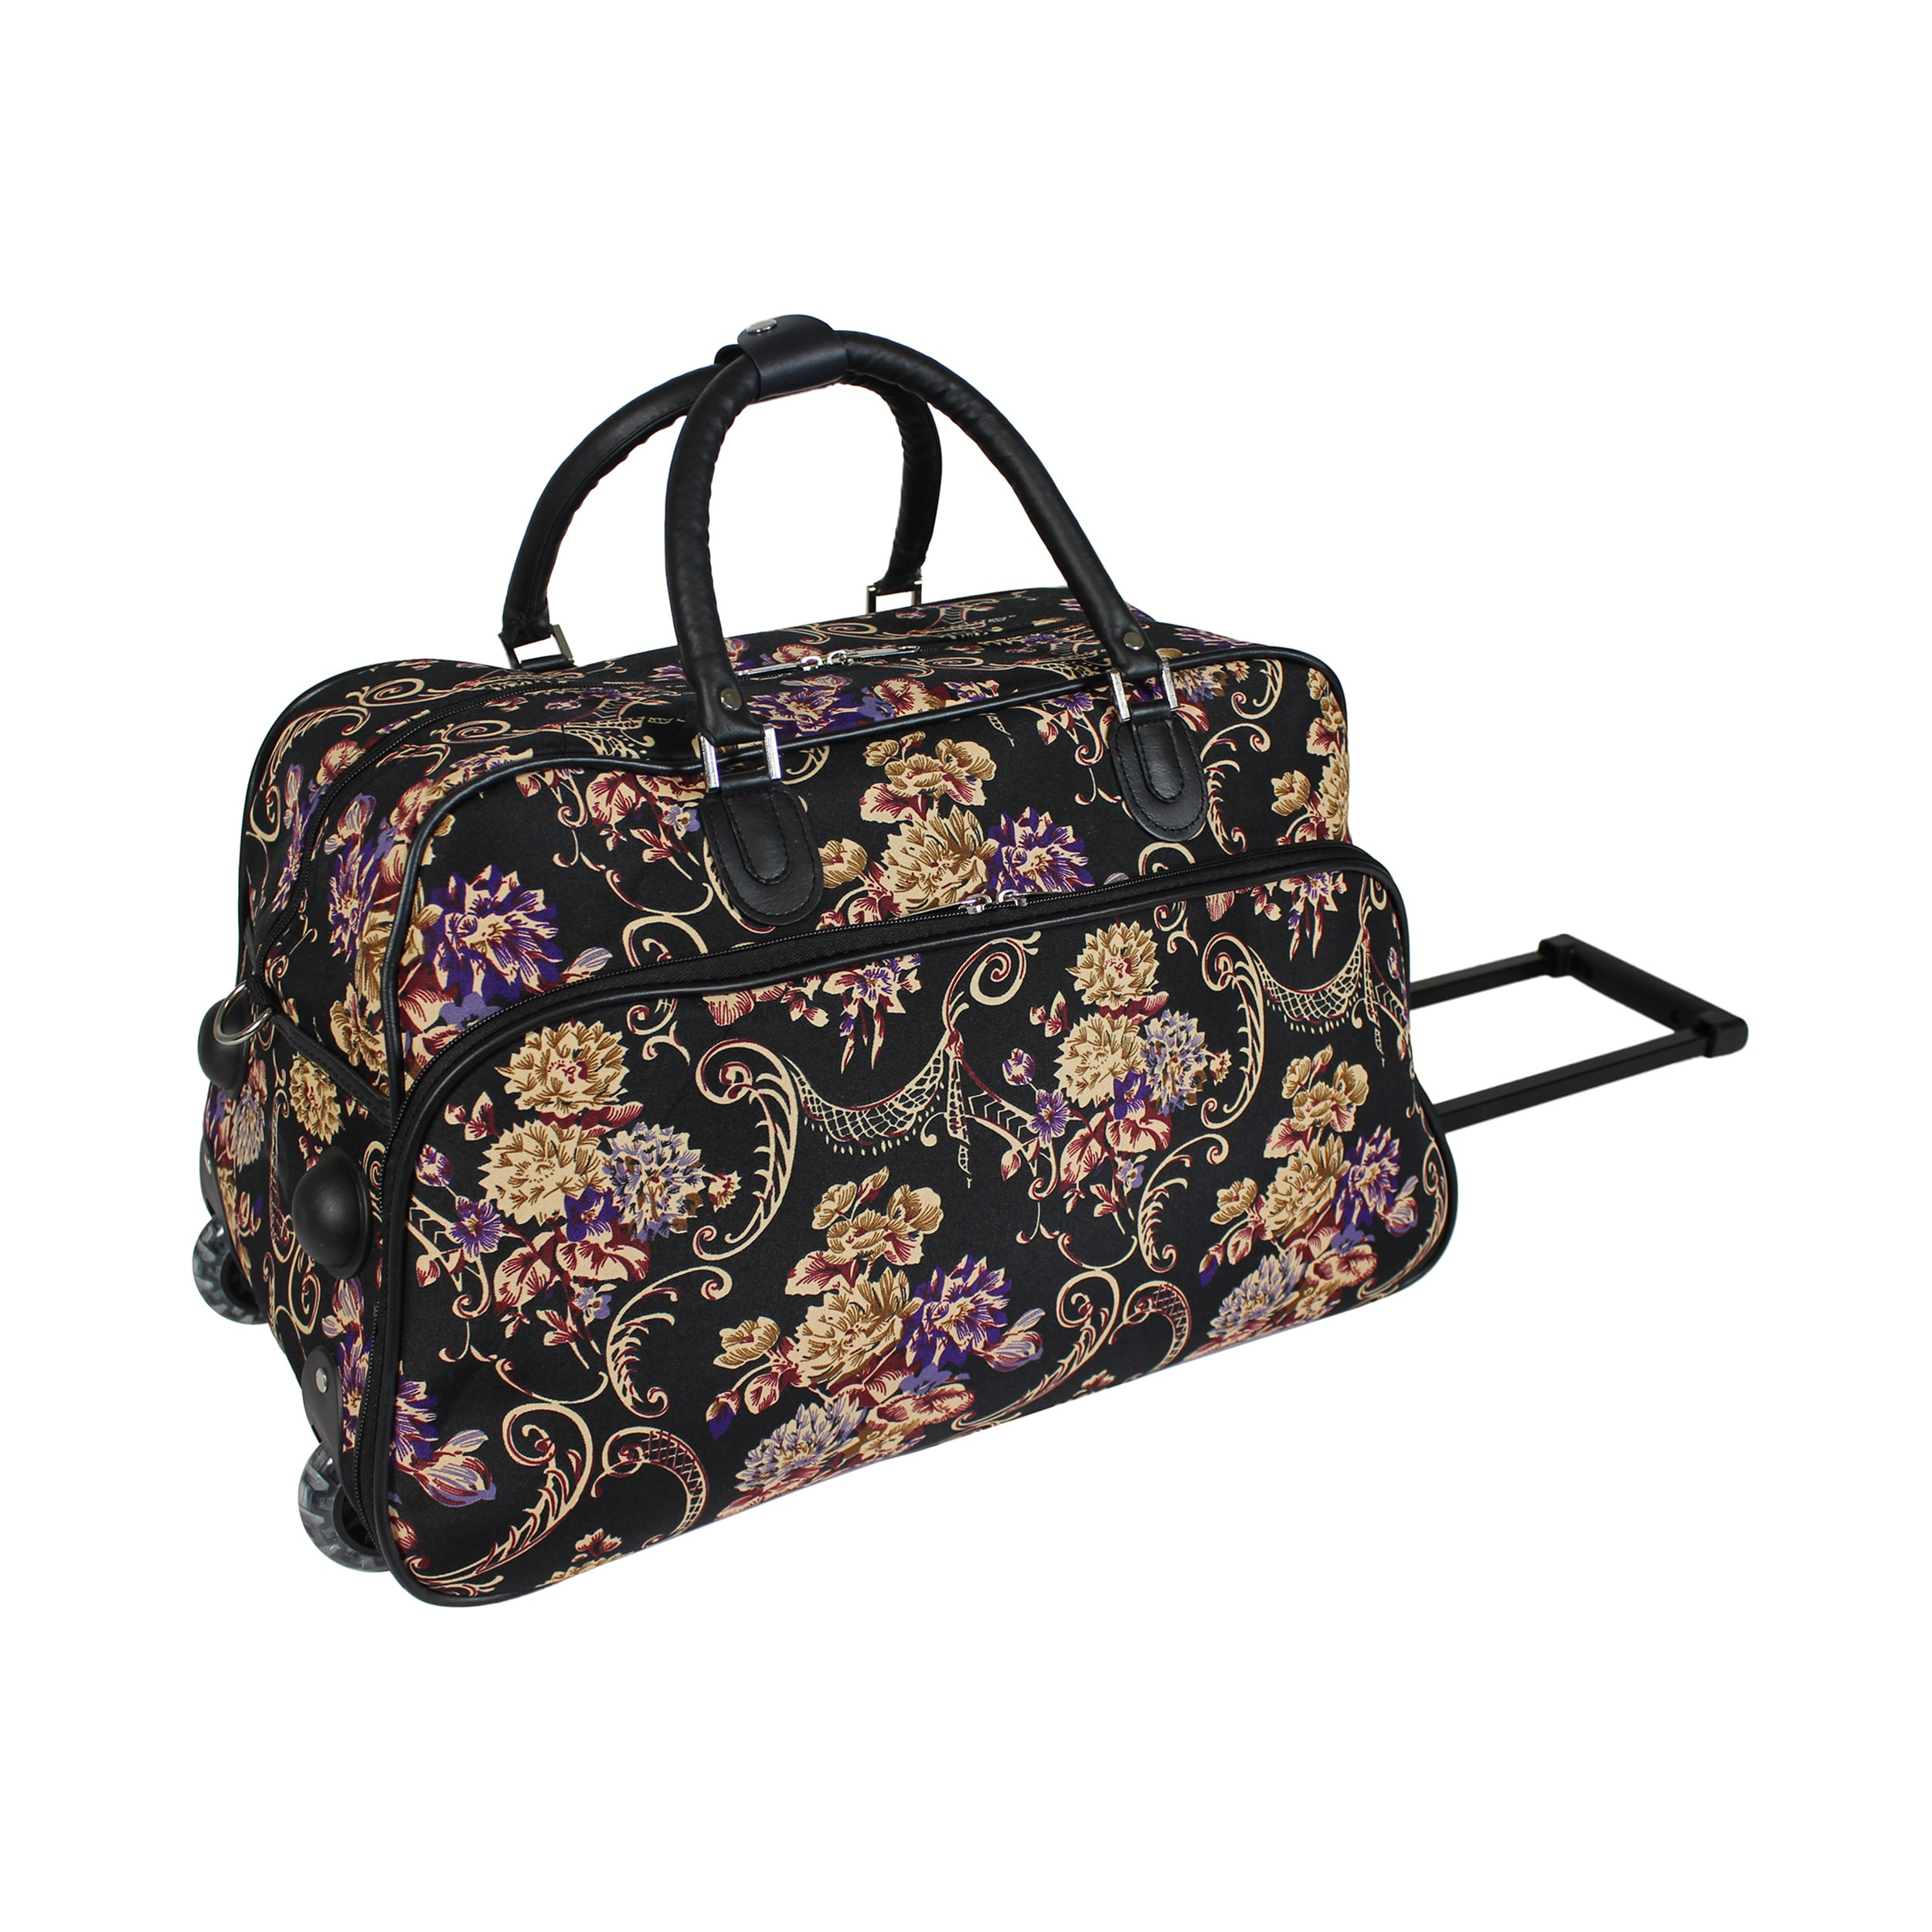 c9365f9845d3 Shop World Traveler Classic Floral 21-Inch Carry-On Rolling Duffel ...